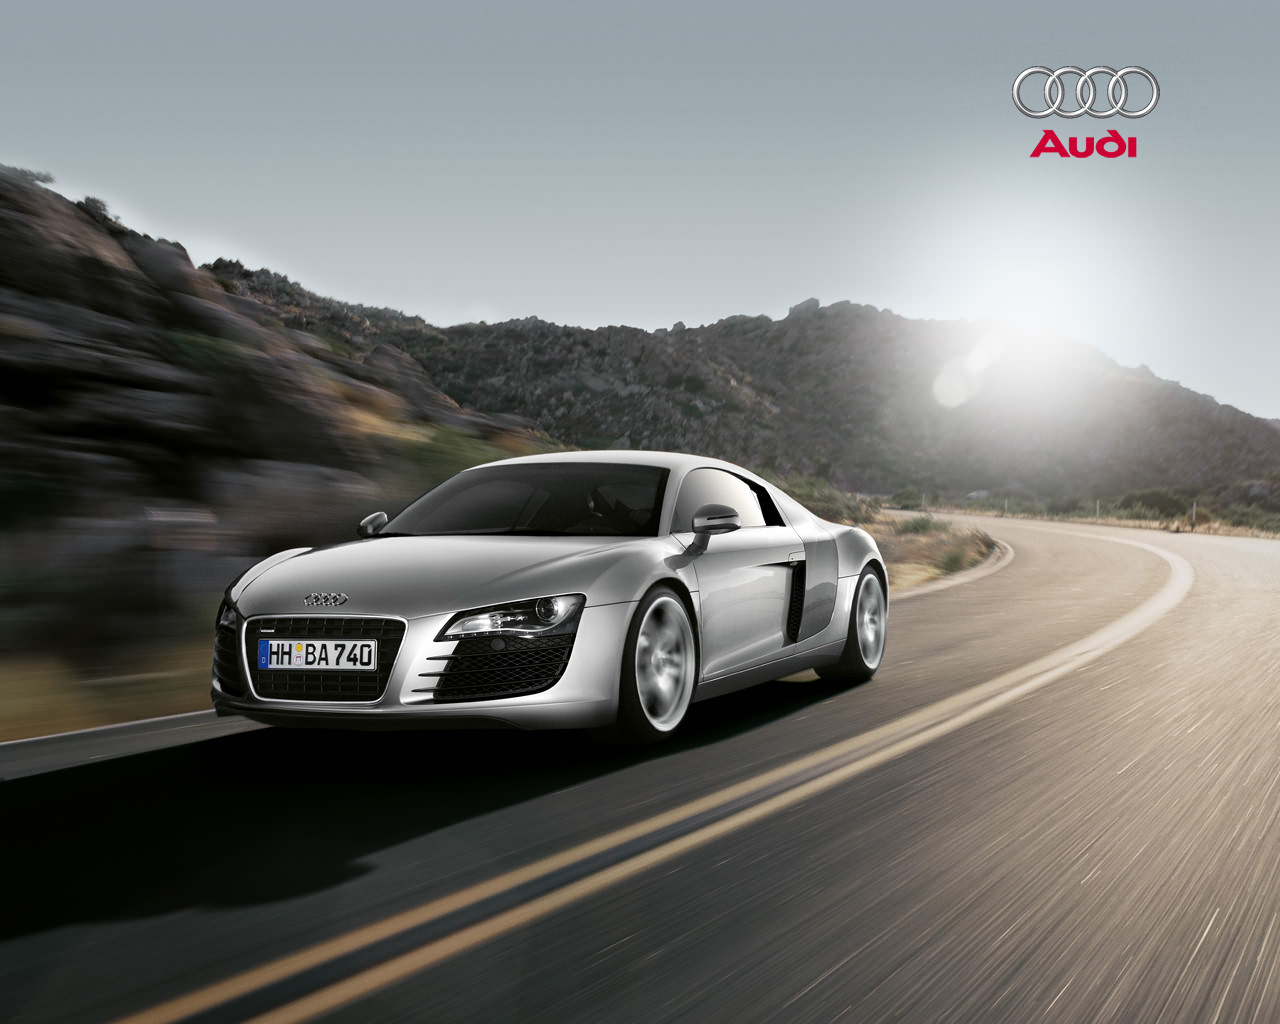 audi r8 cars audi r8 wallpaper. Black Bedroom Furniture Sets. Home Design Ideas